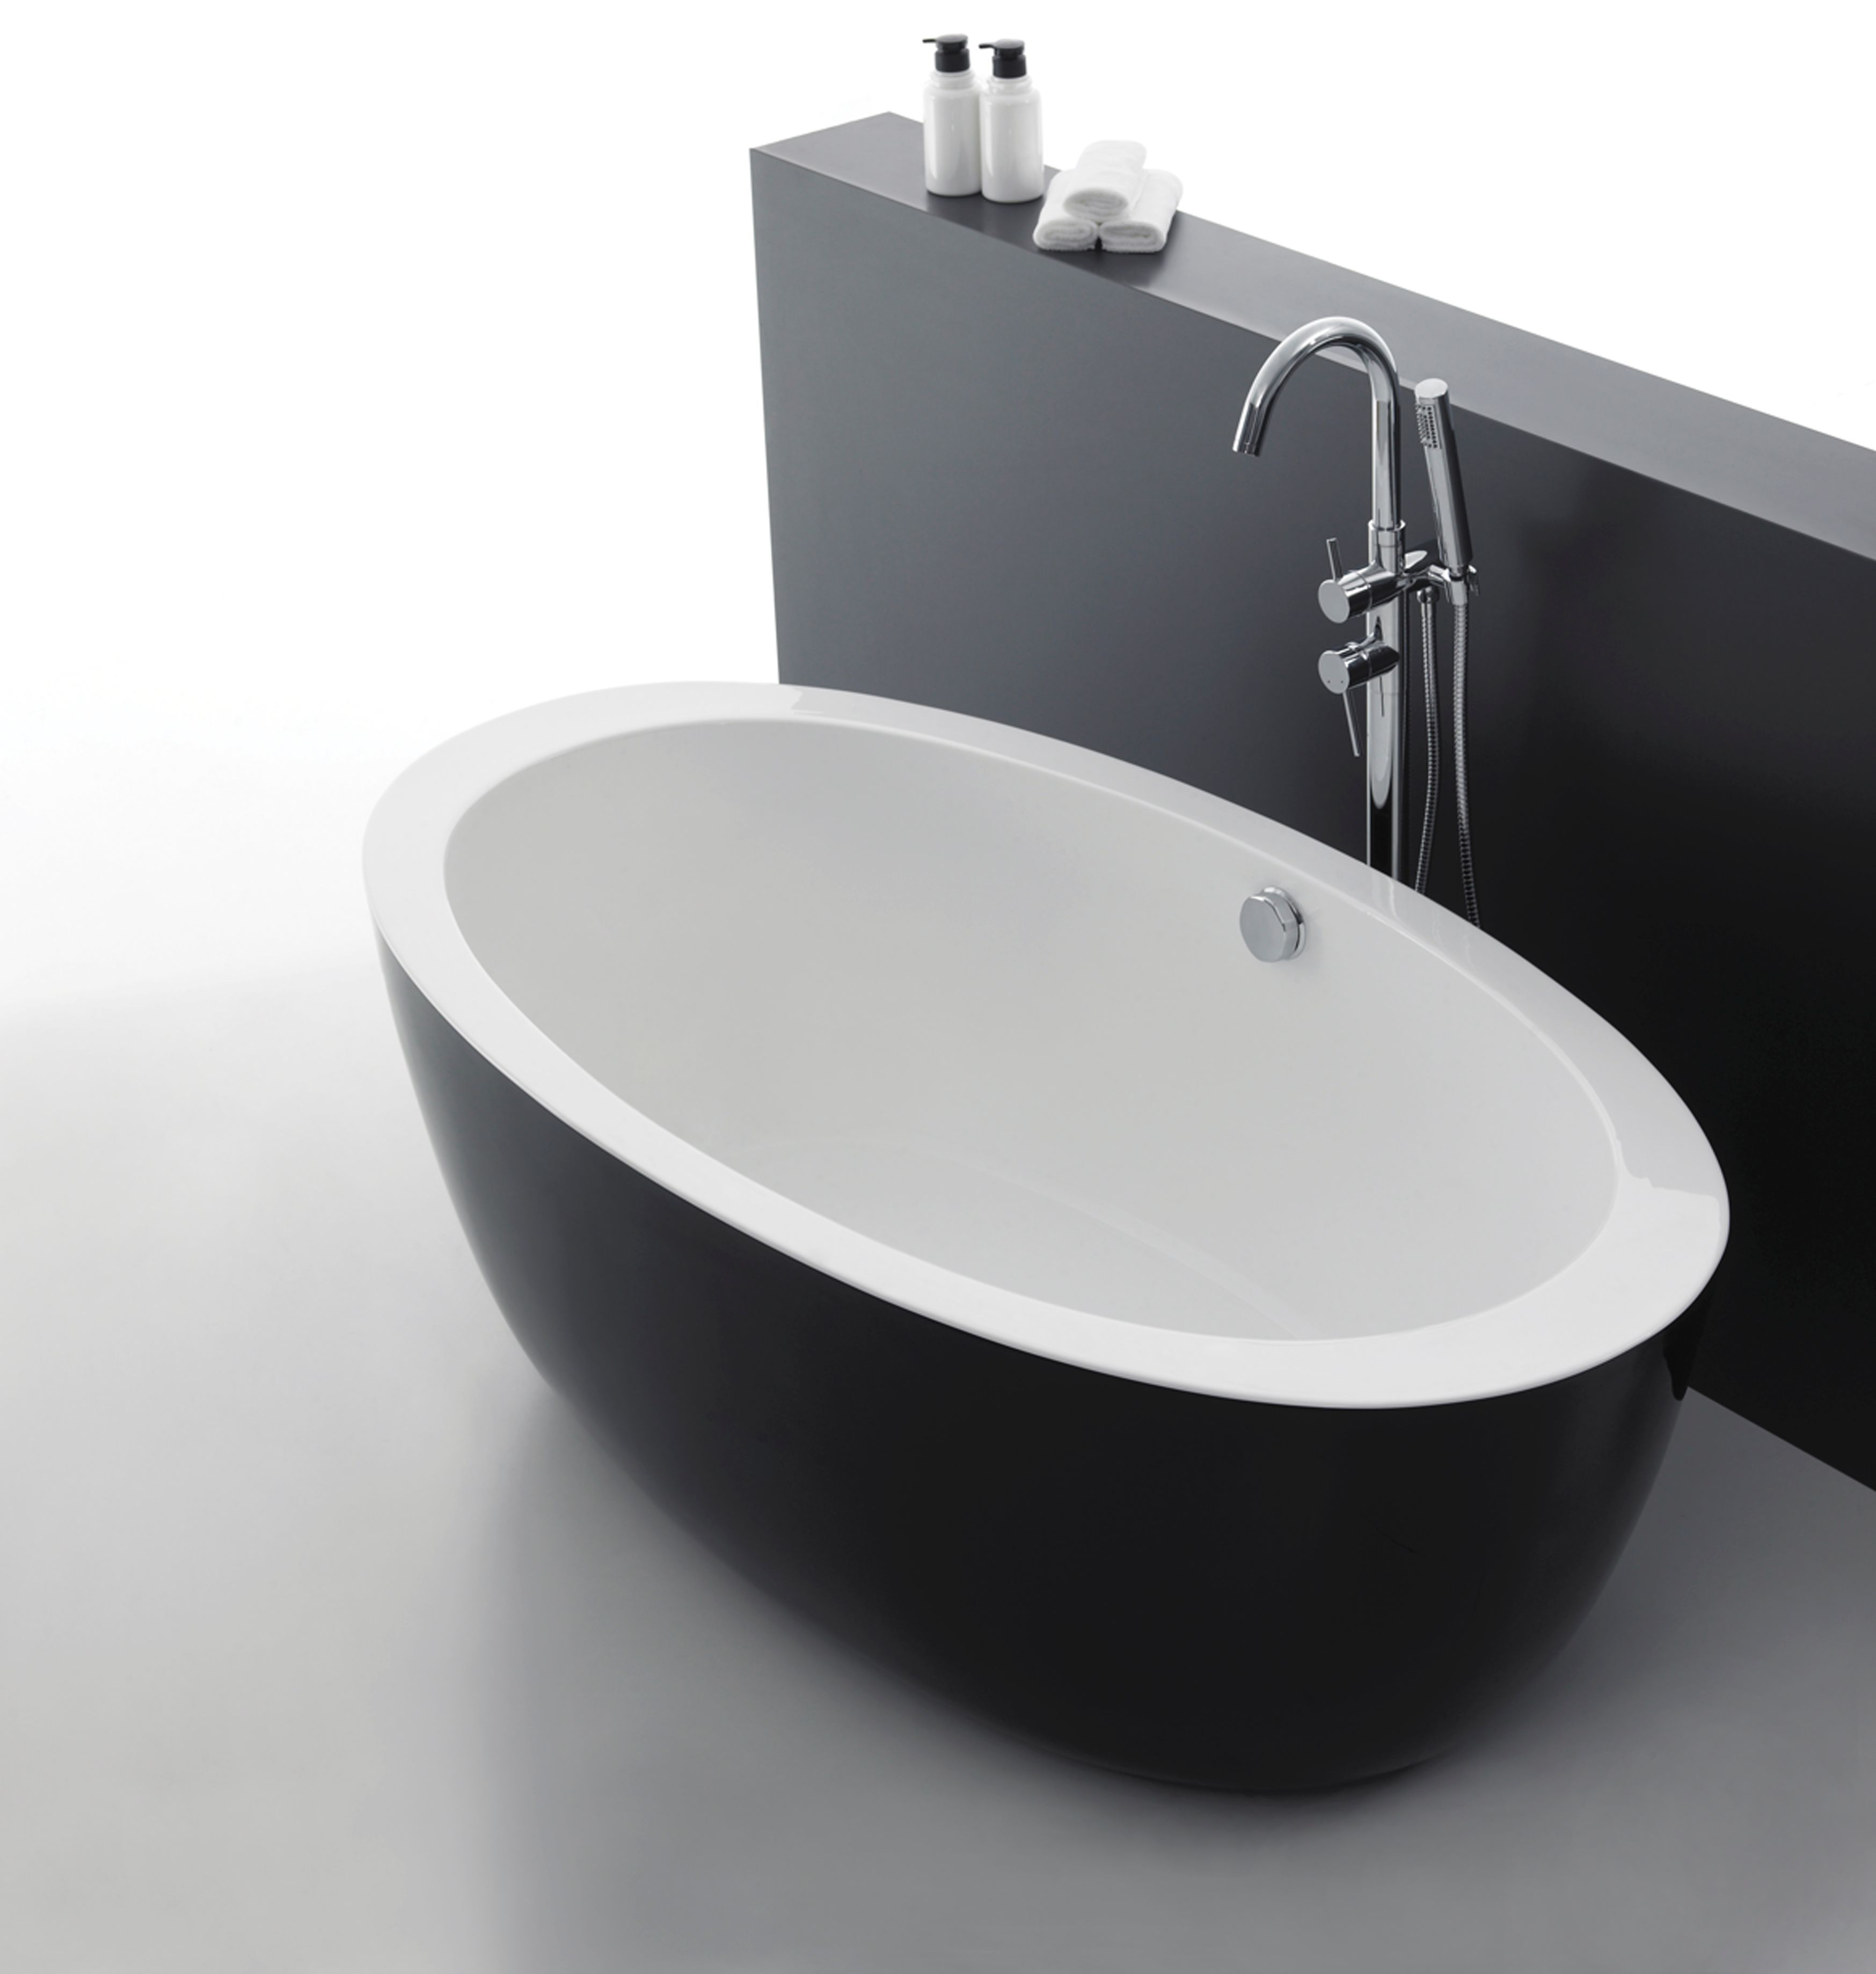 freistehende badewanne acryl badewanne schwarz wei 1700x880x600 mm ebay. Black Bedroom Furniture Sets. Home Design Ideas